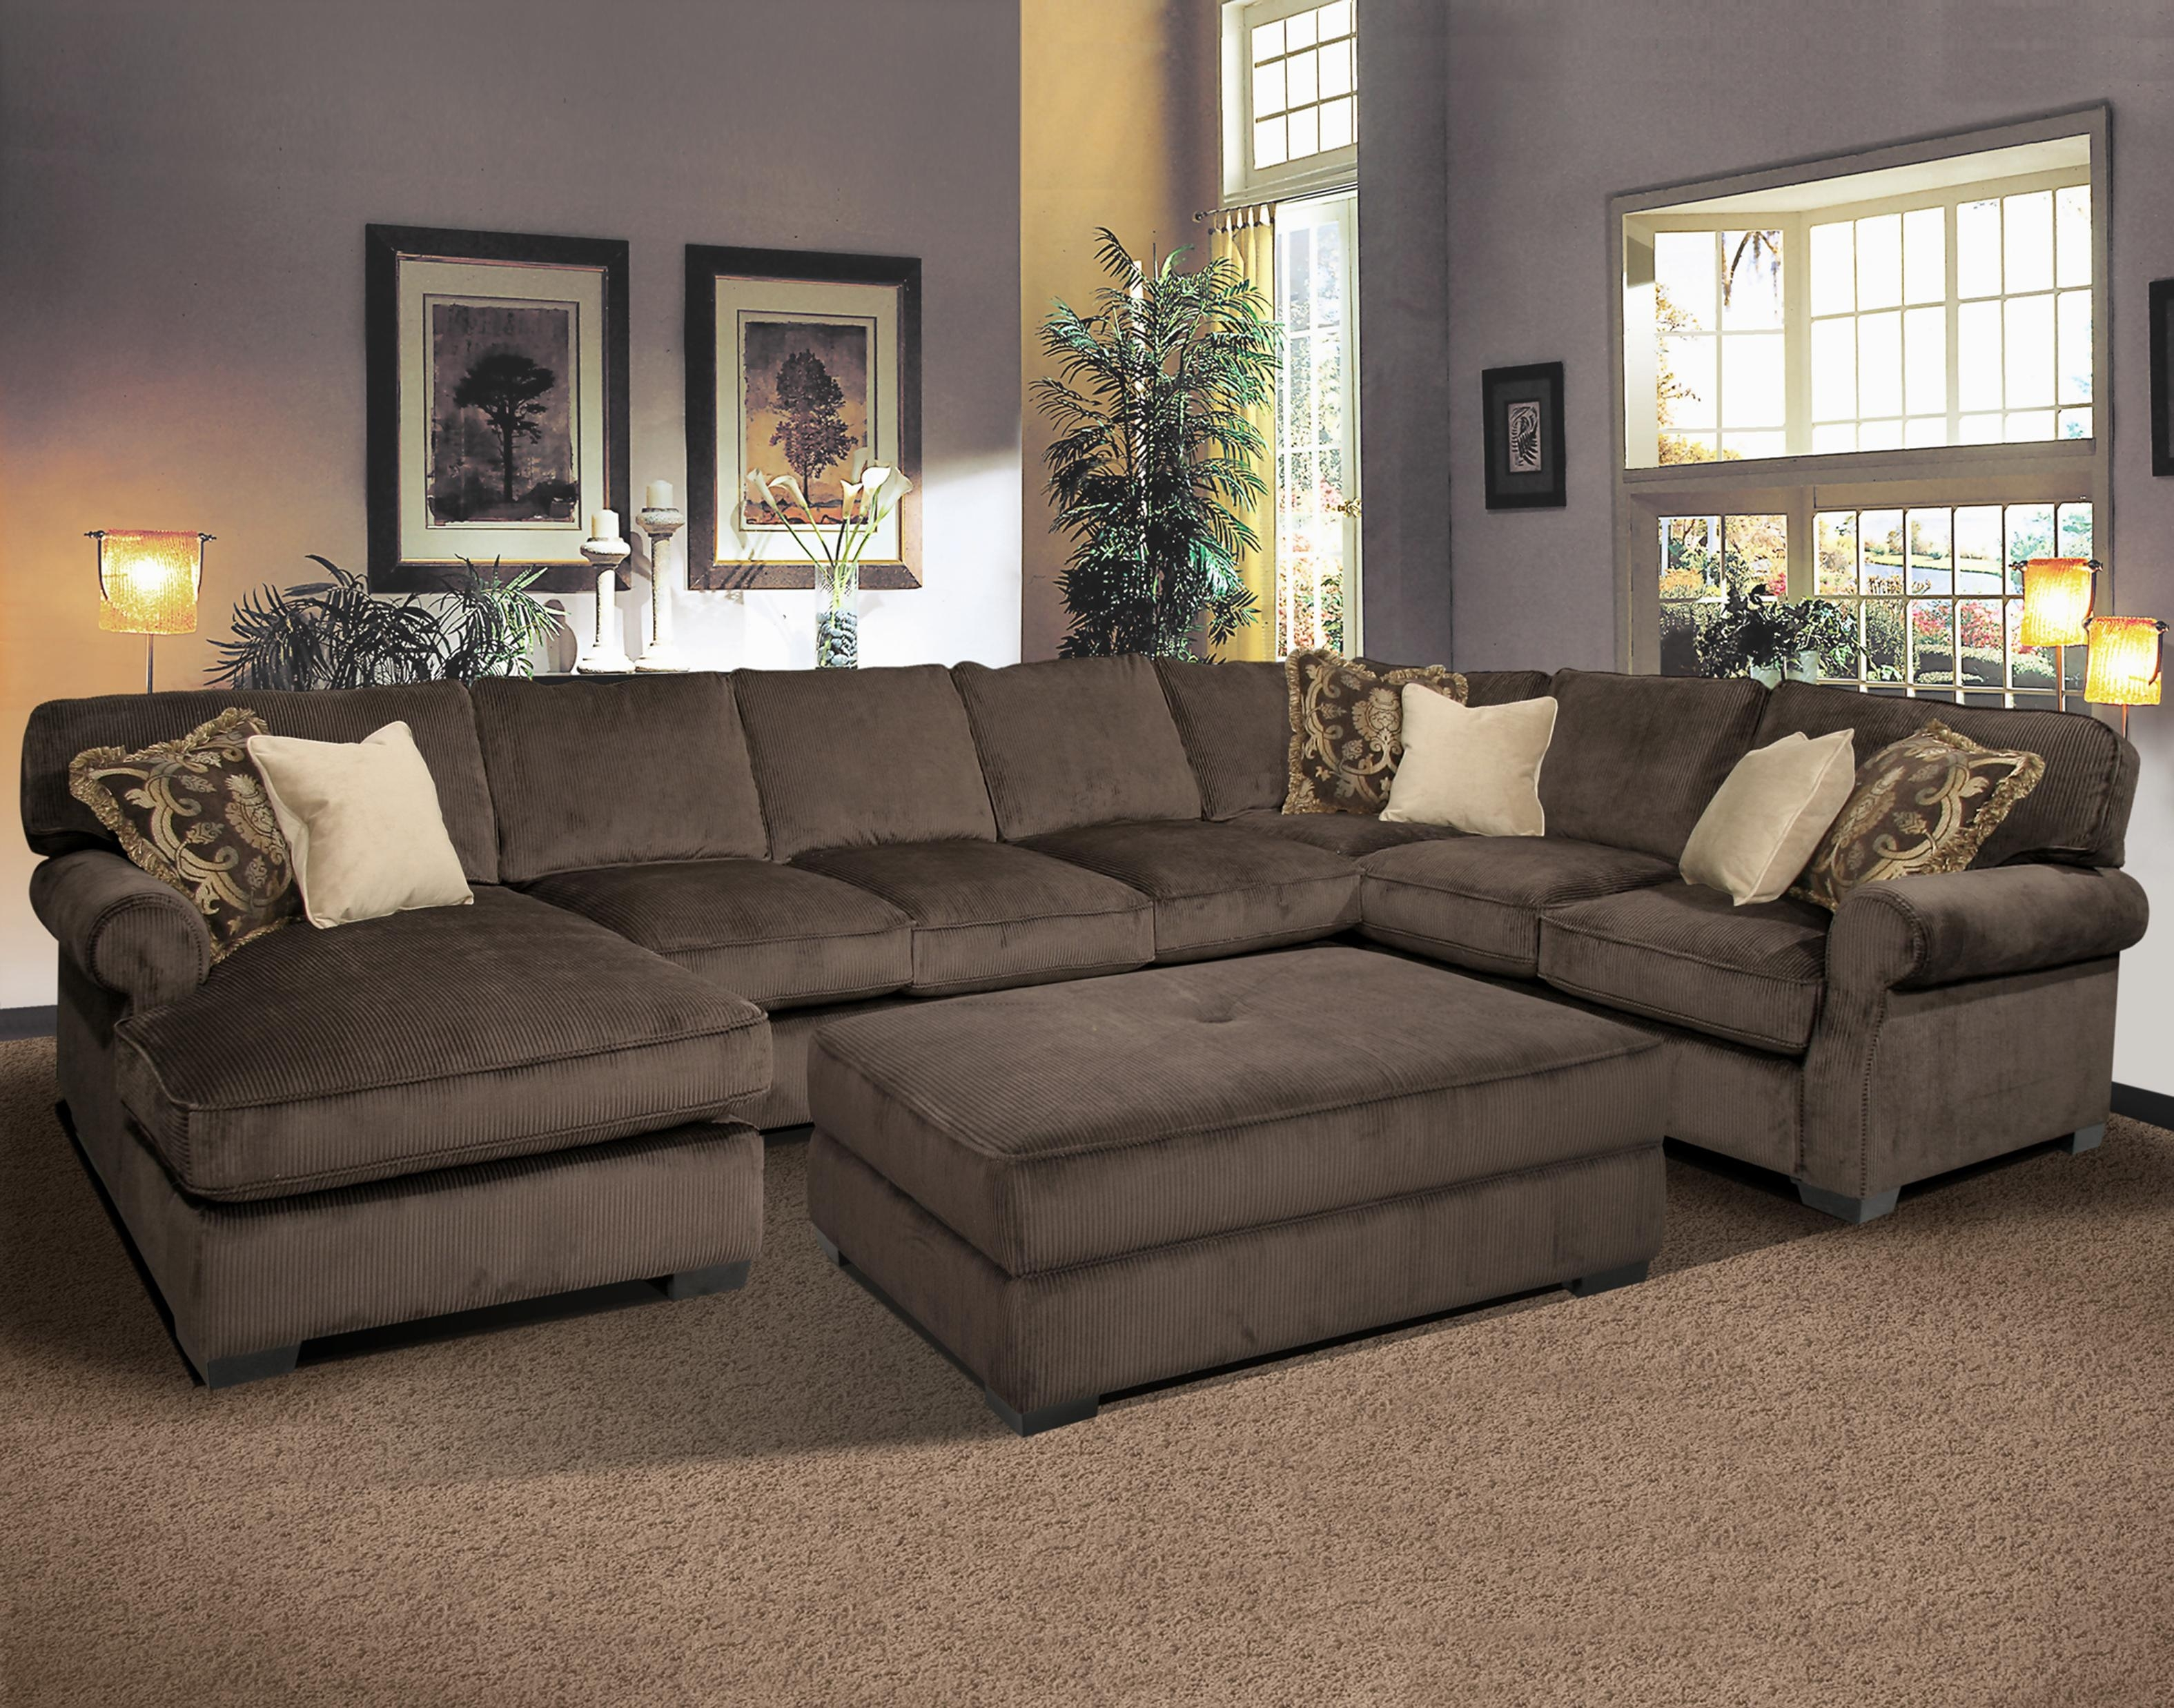 Furniture & Sofa: Cheap Couches | Ashley Furniture Evansville In Jacksonville Nc Sectional Sofas (Image 7 of 10)